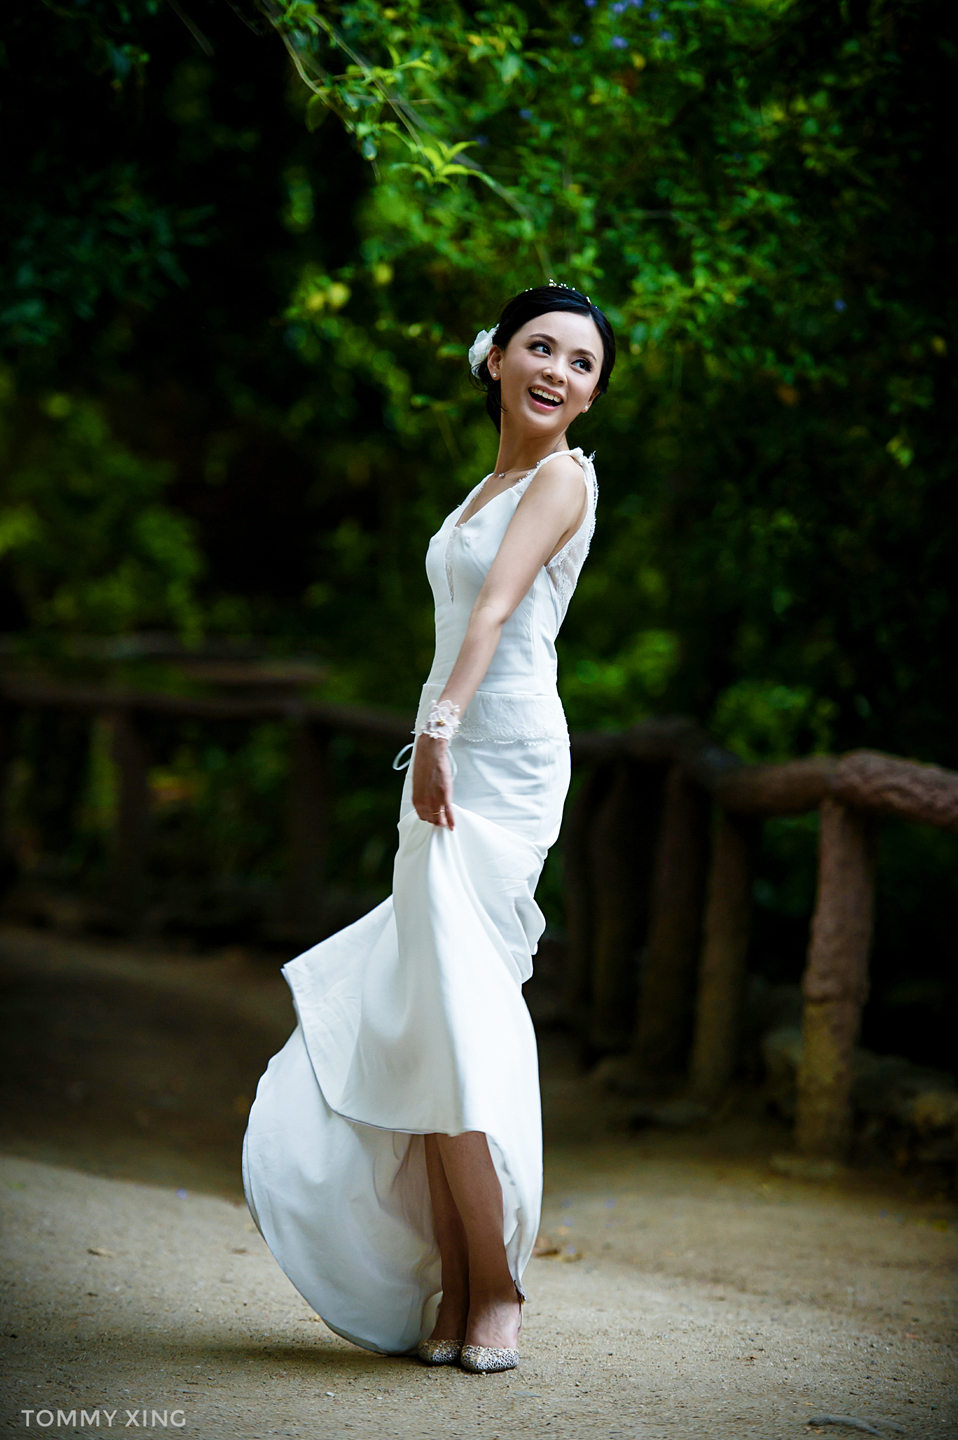 Los Angeles per-wedding 洛杉矶婚纱照 by Tommy Xing Photography 17.jpg